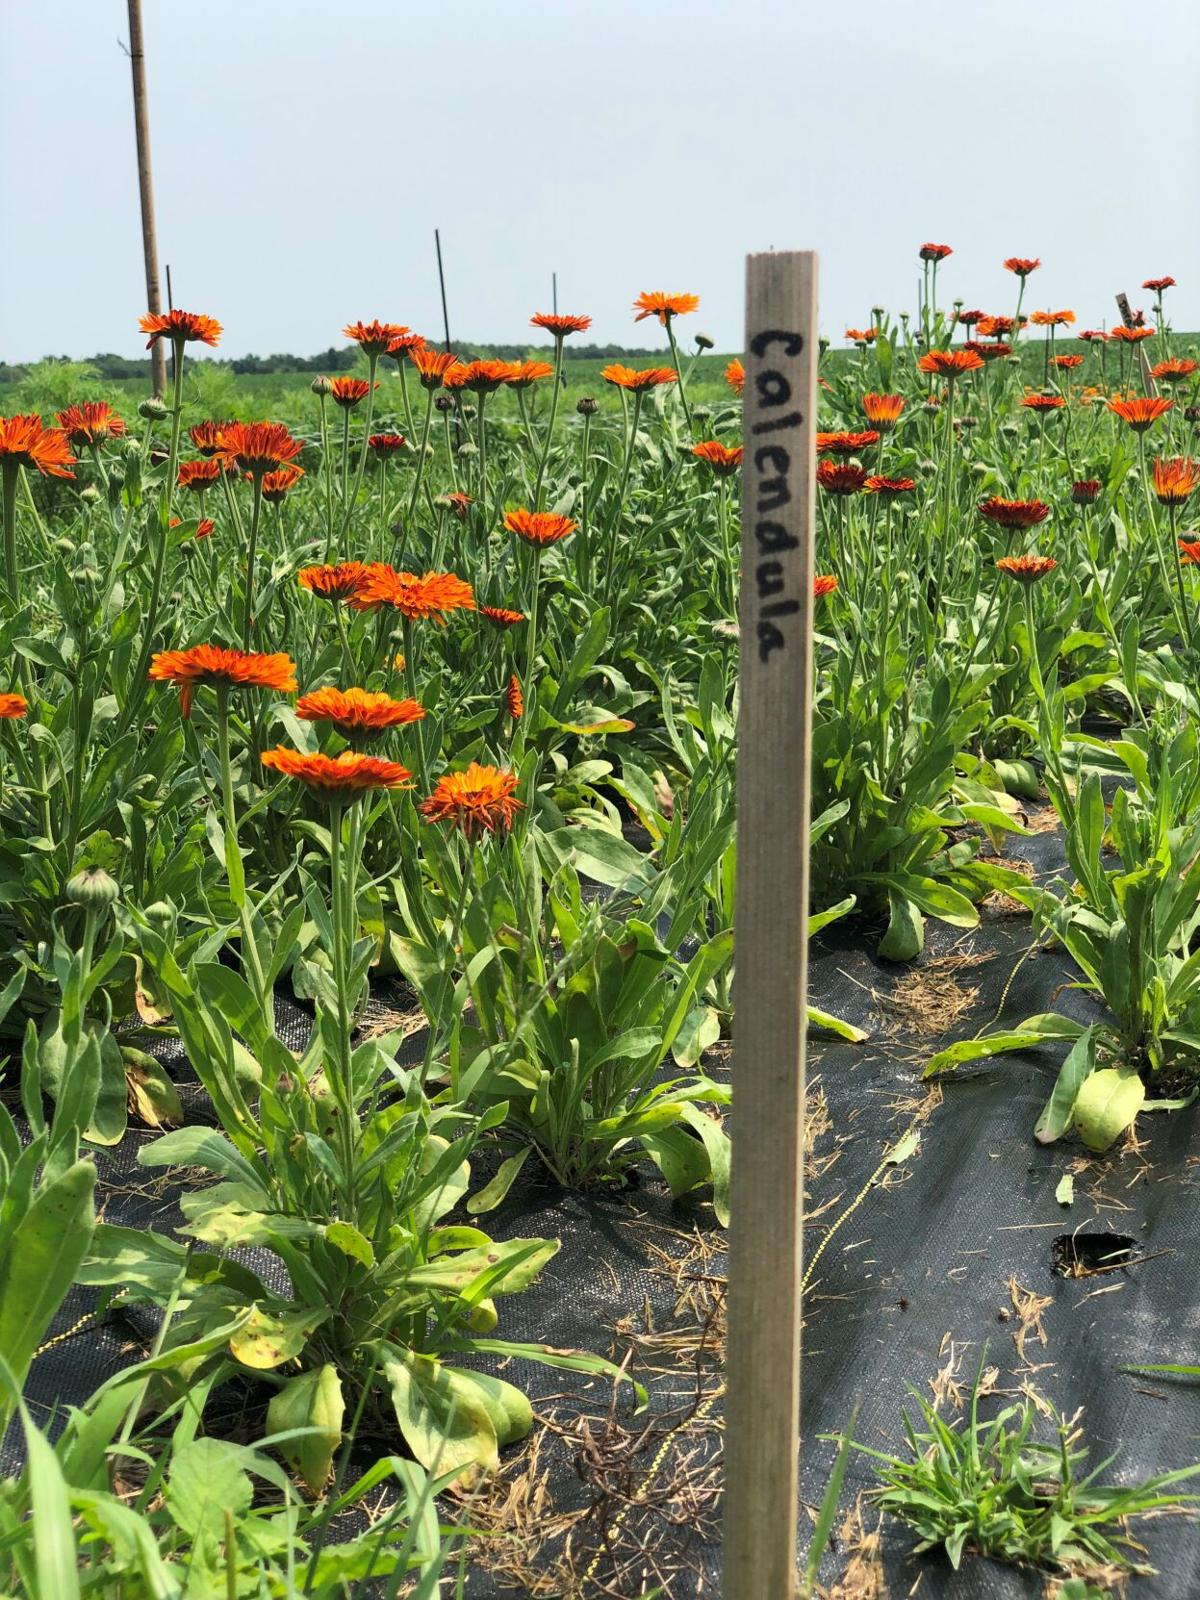 Farming, flowers meet in the middle